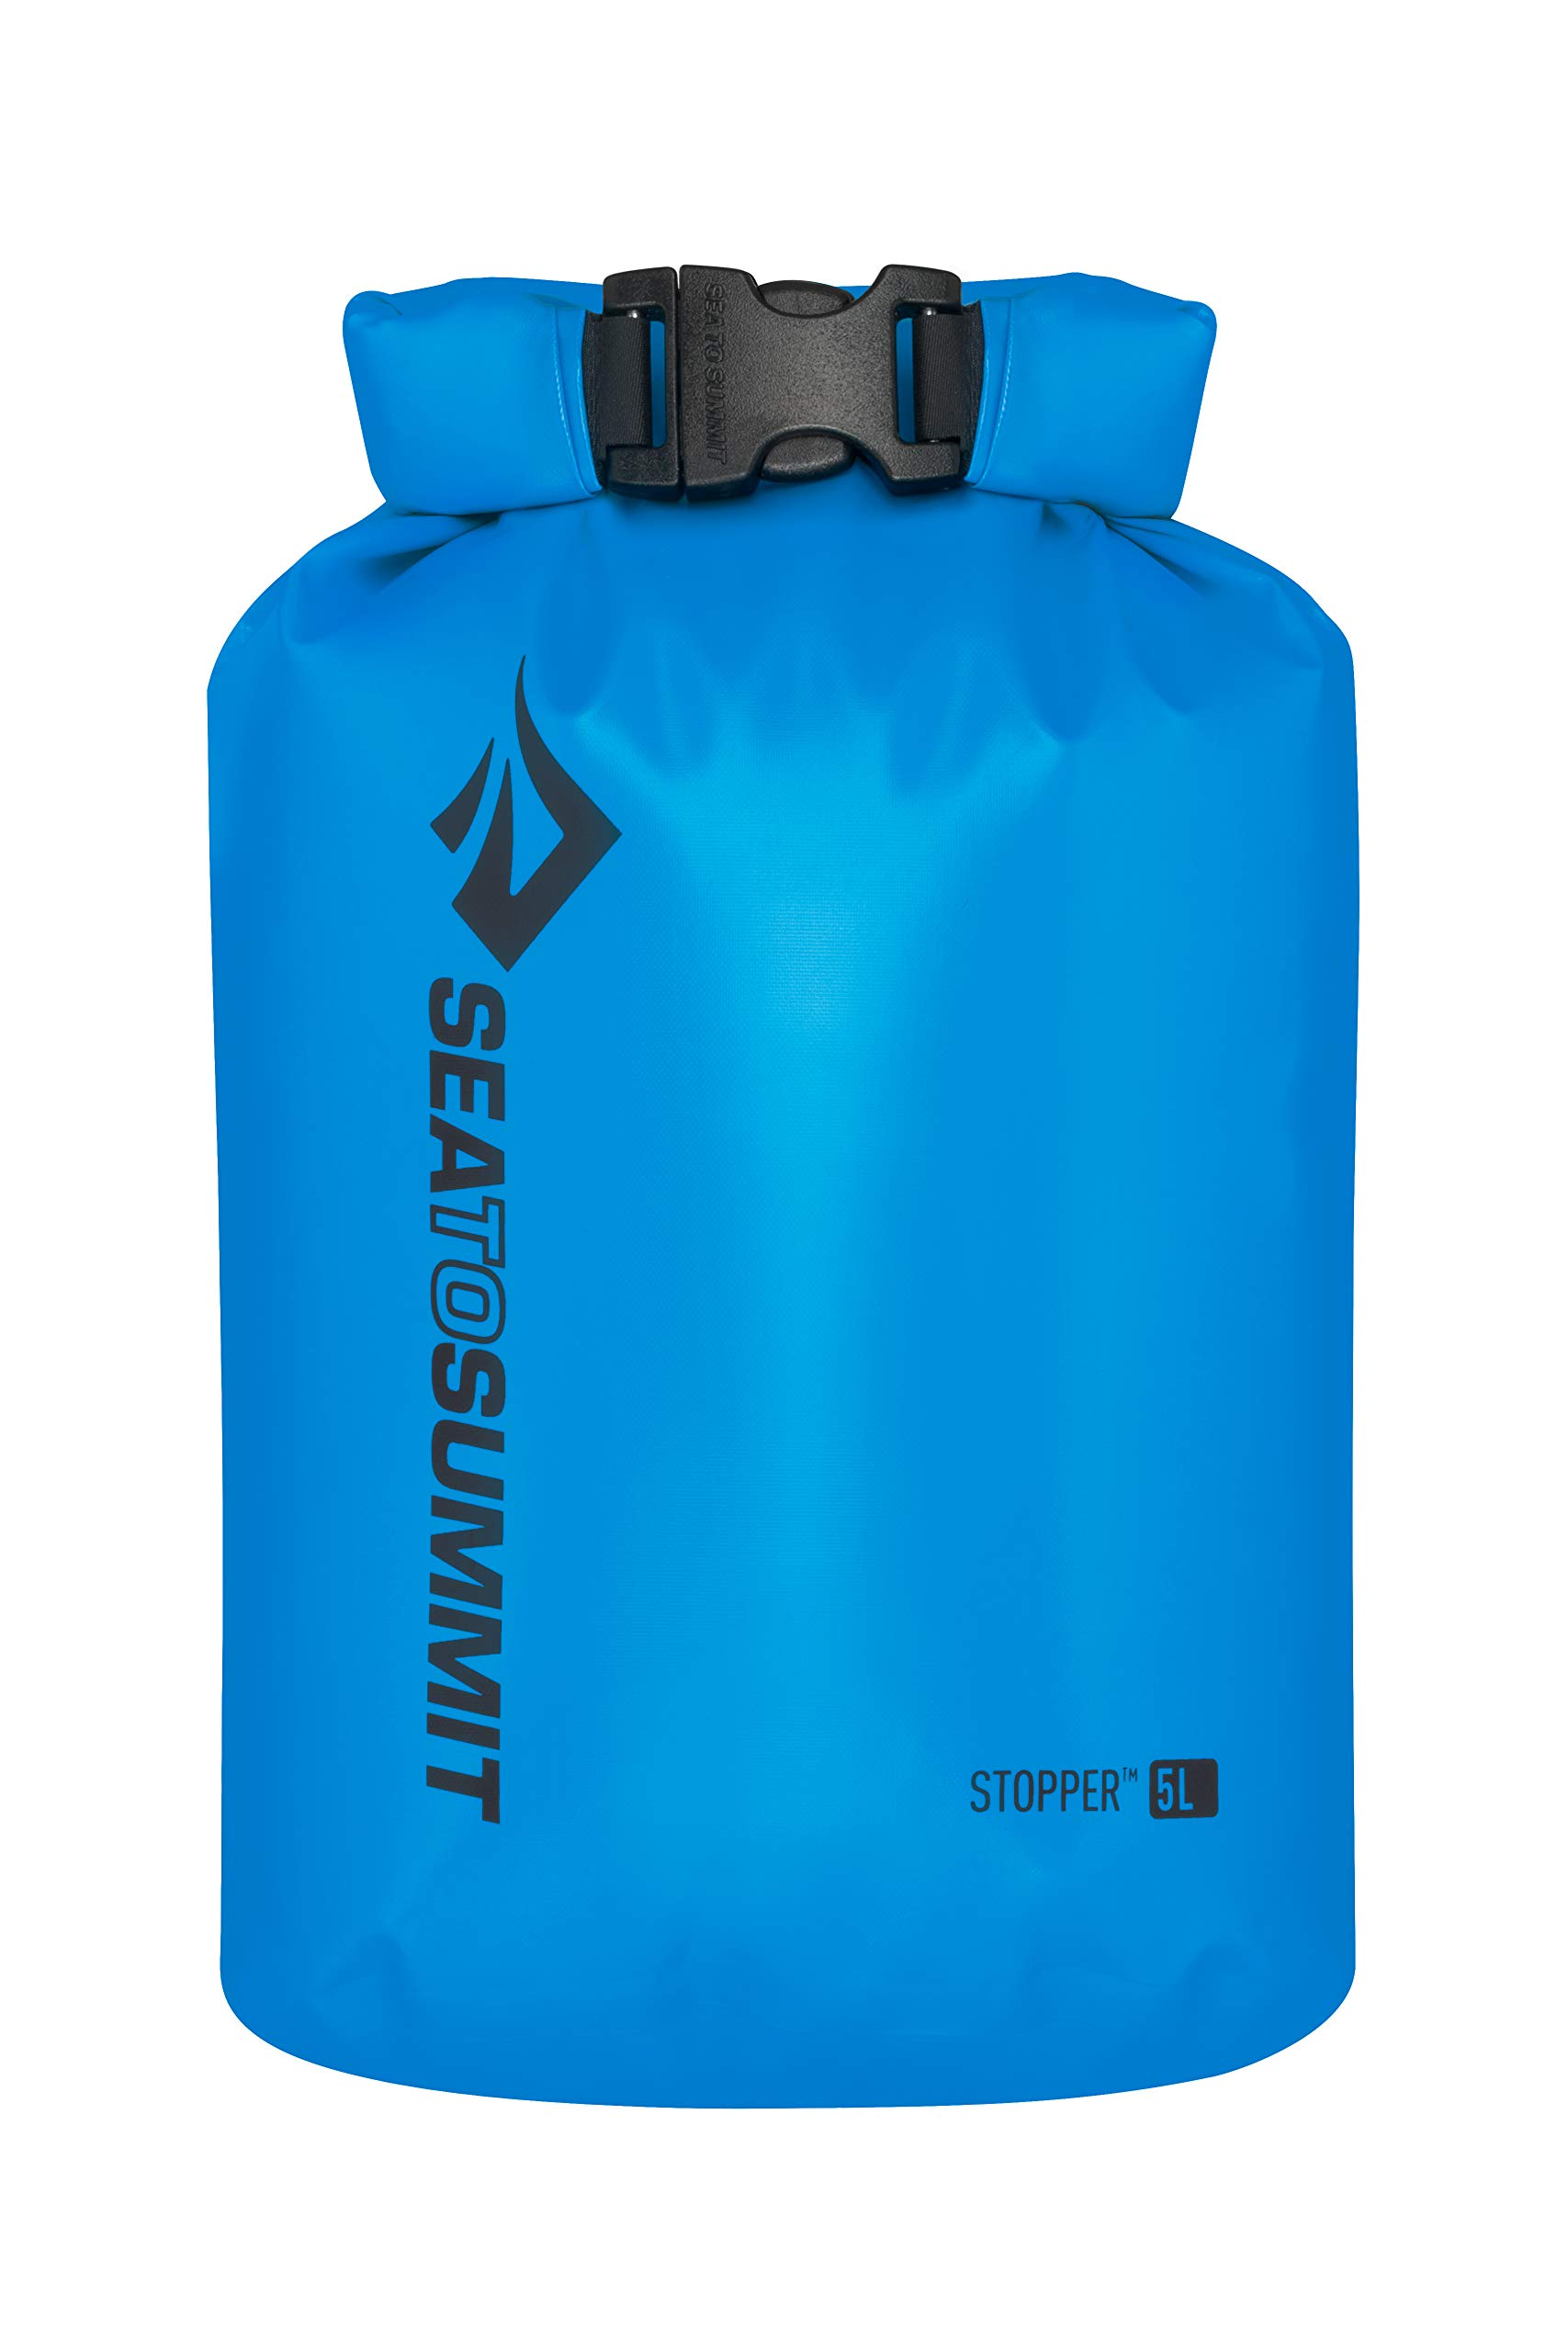 Sea to Summit Stopper Dry Bag, Blue, 5 Liter by Sea to Summit